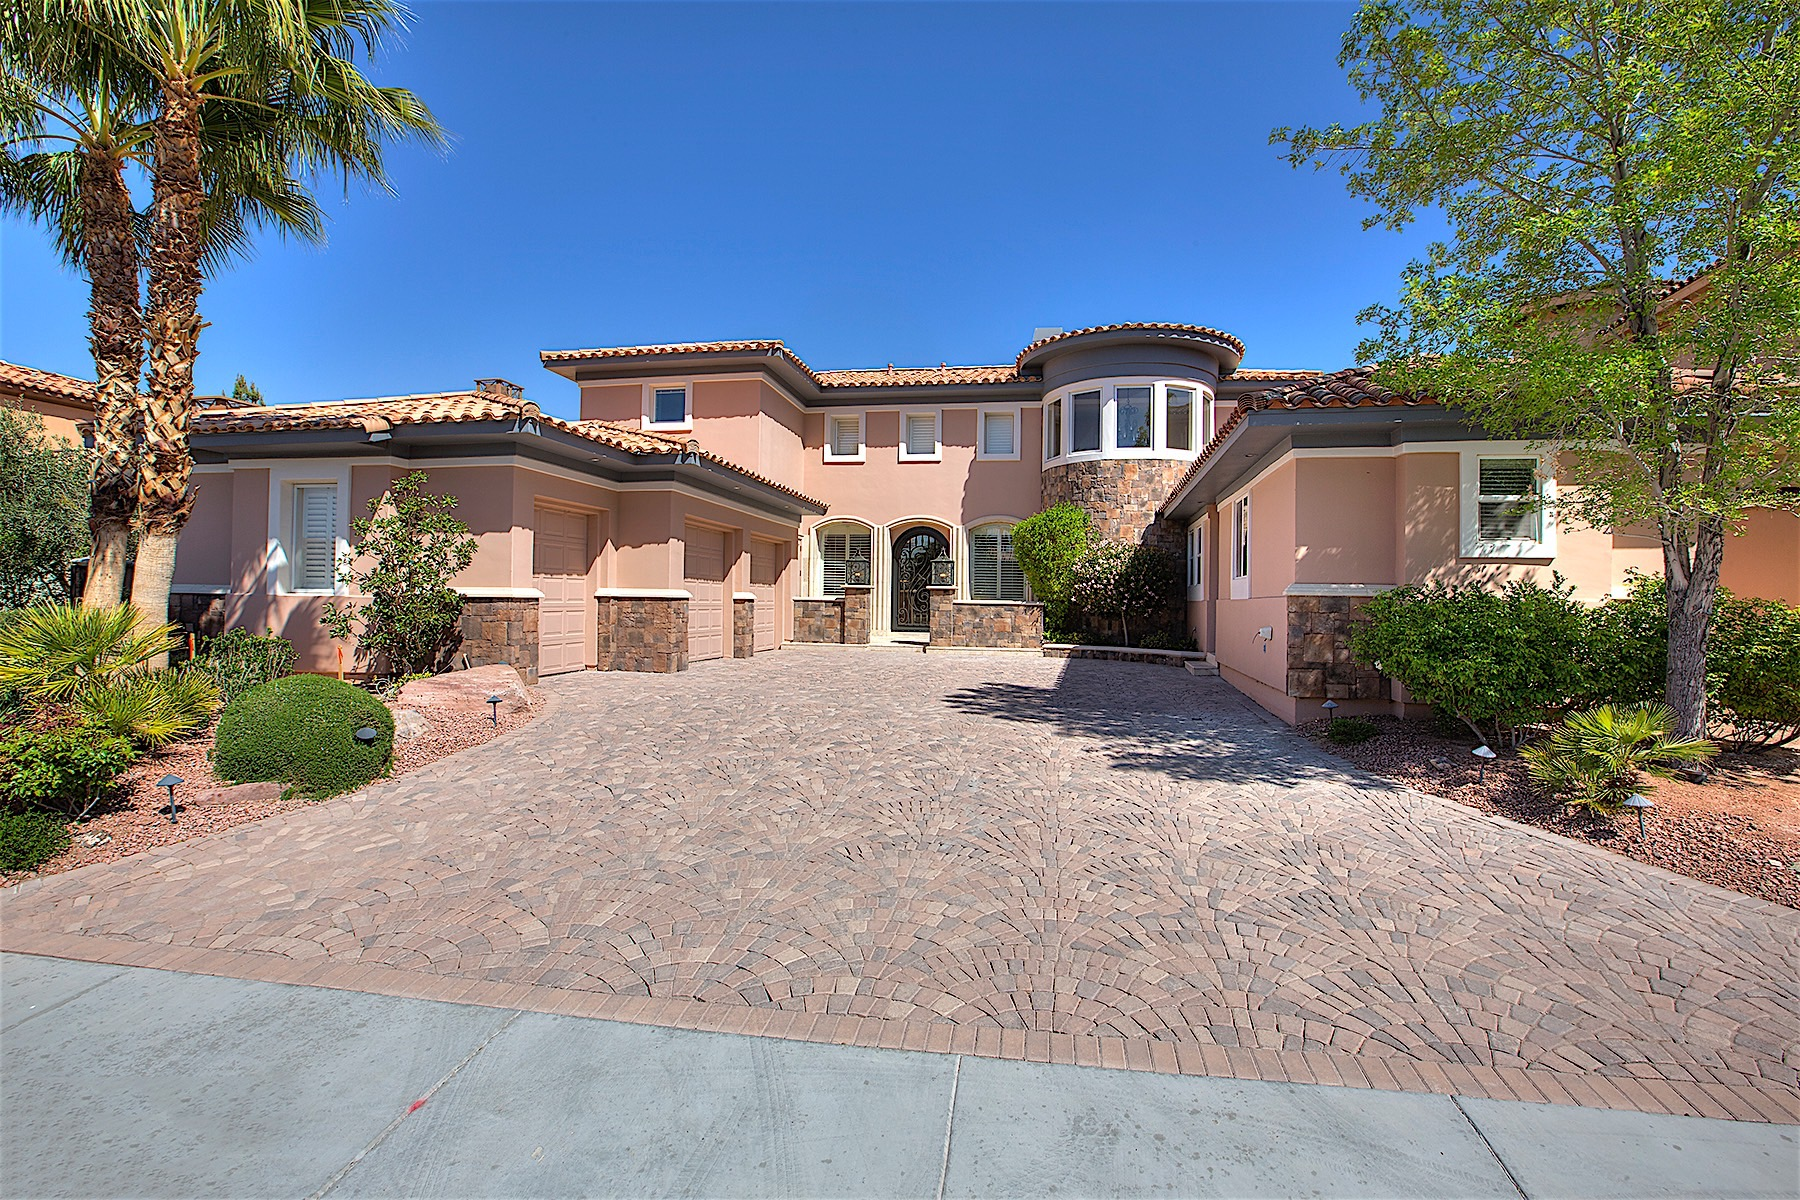 Single Family Home for Sale at 20 Grand Miramar 20 Grand Miramar Dr Lake Las Vegas, Henderson, Nevada, 89011 United States